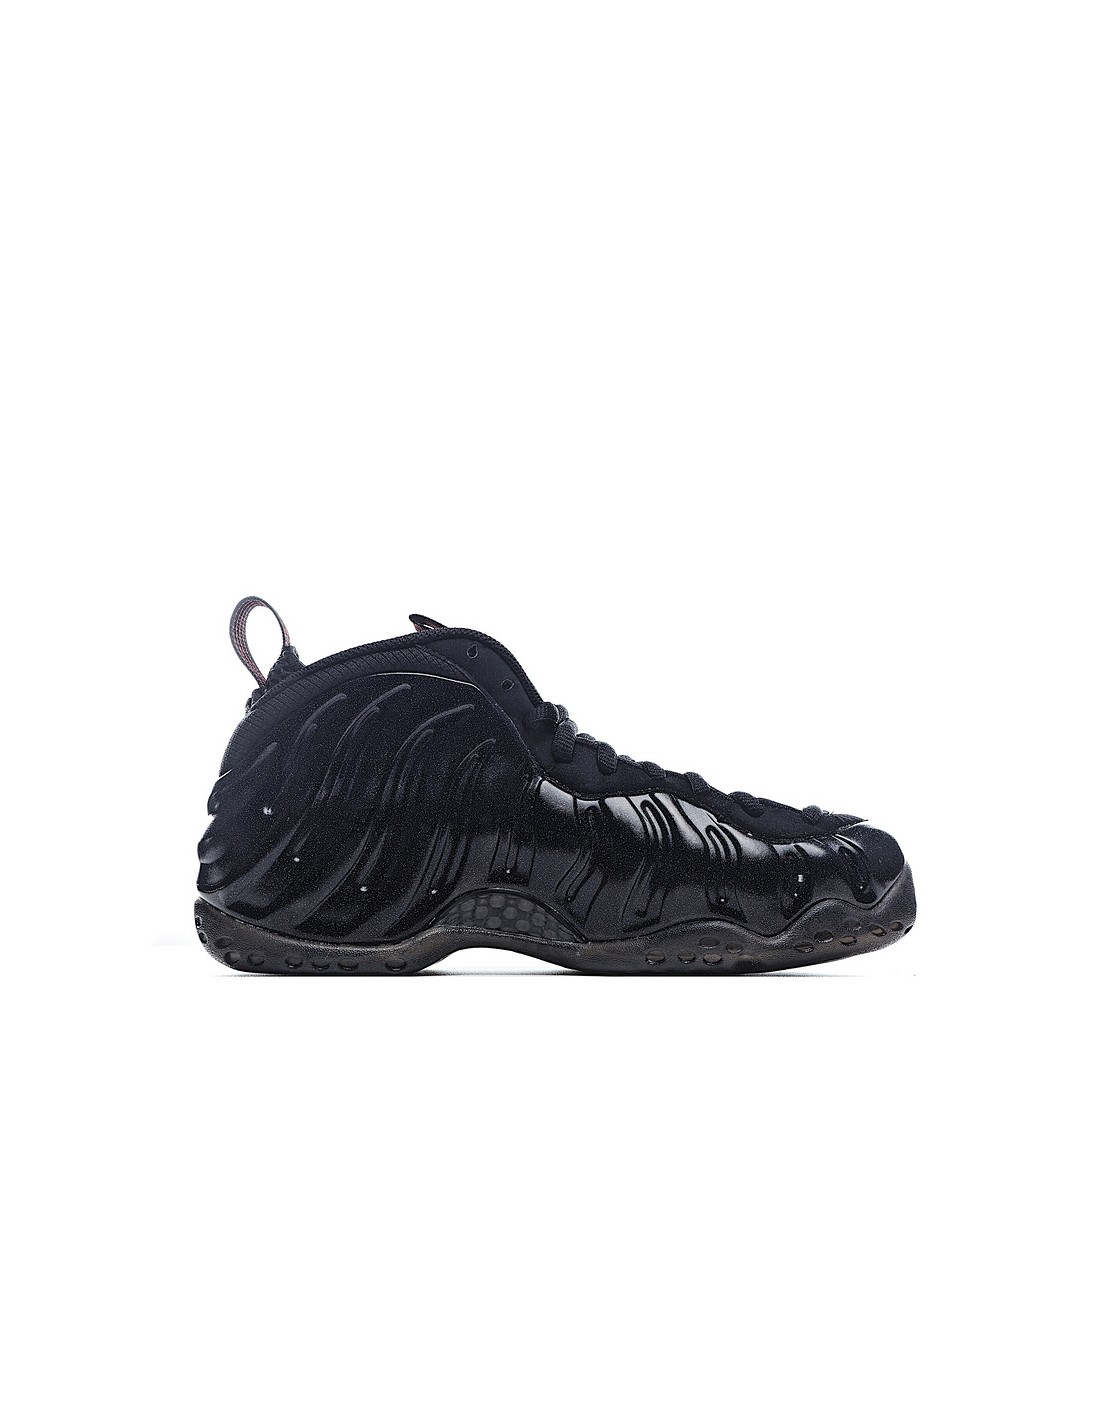 Nike Air Foamposite One NRG Galaxy 521286 800 in 2020 ...